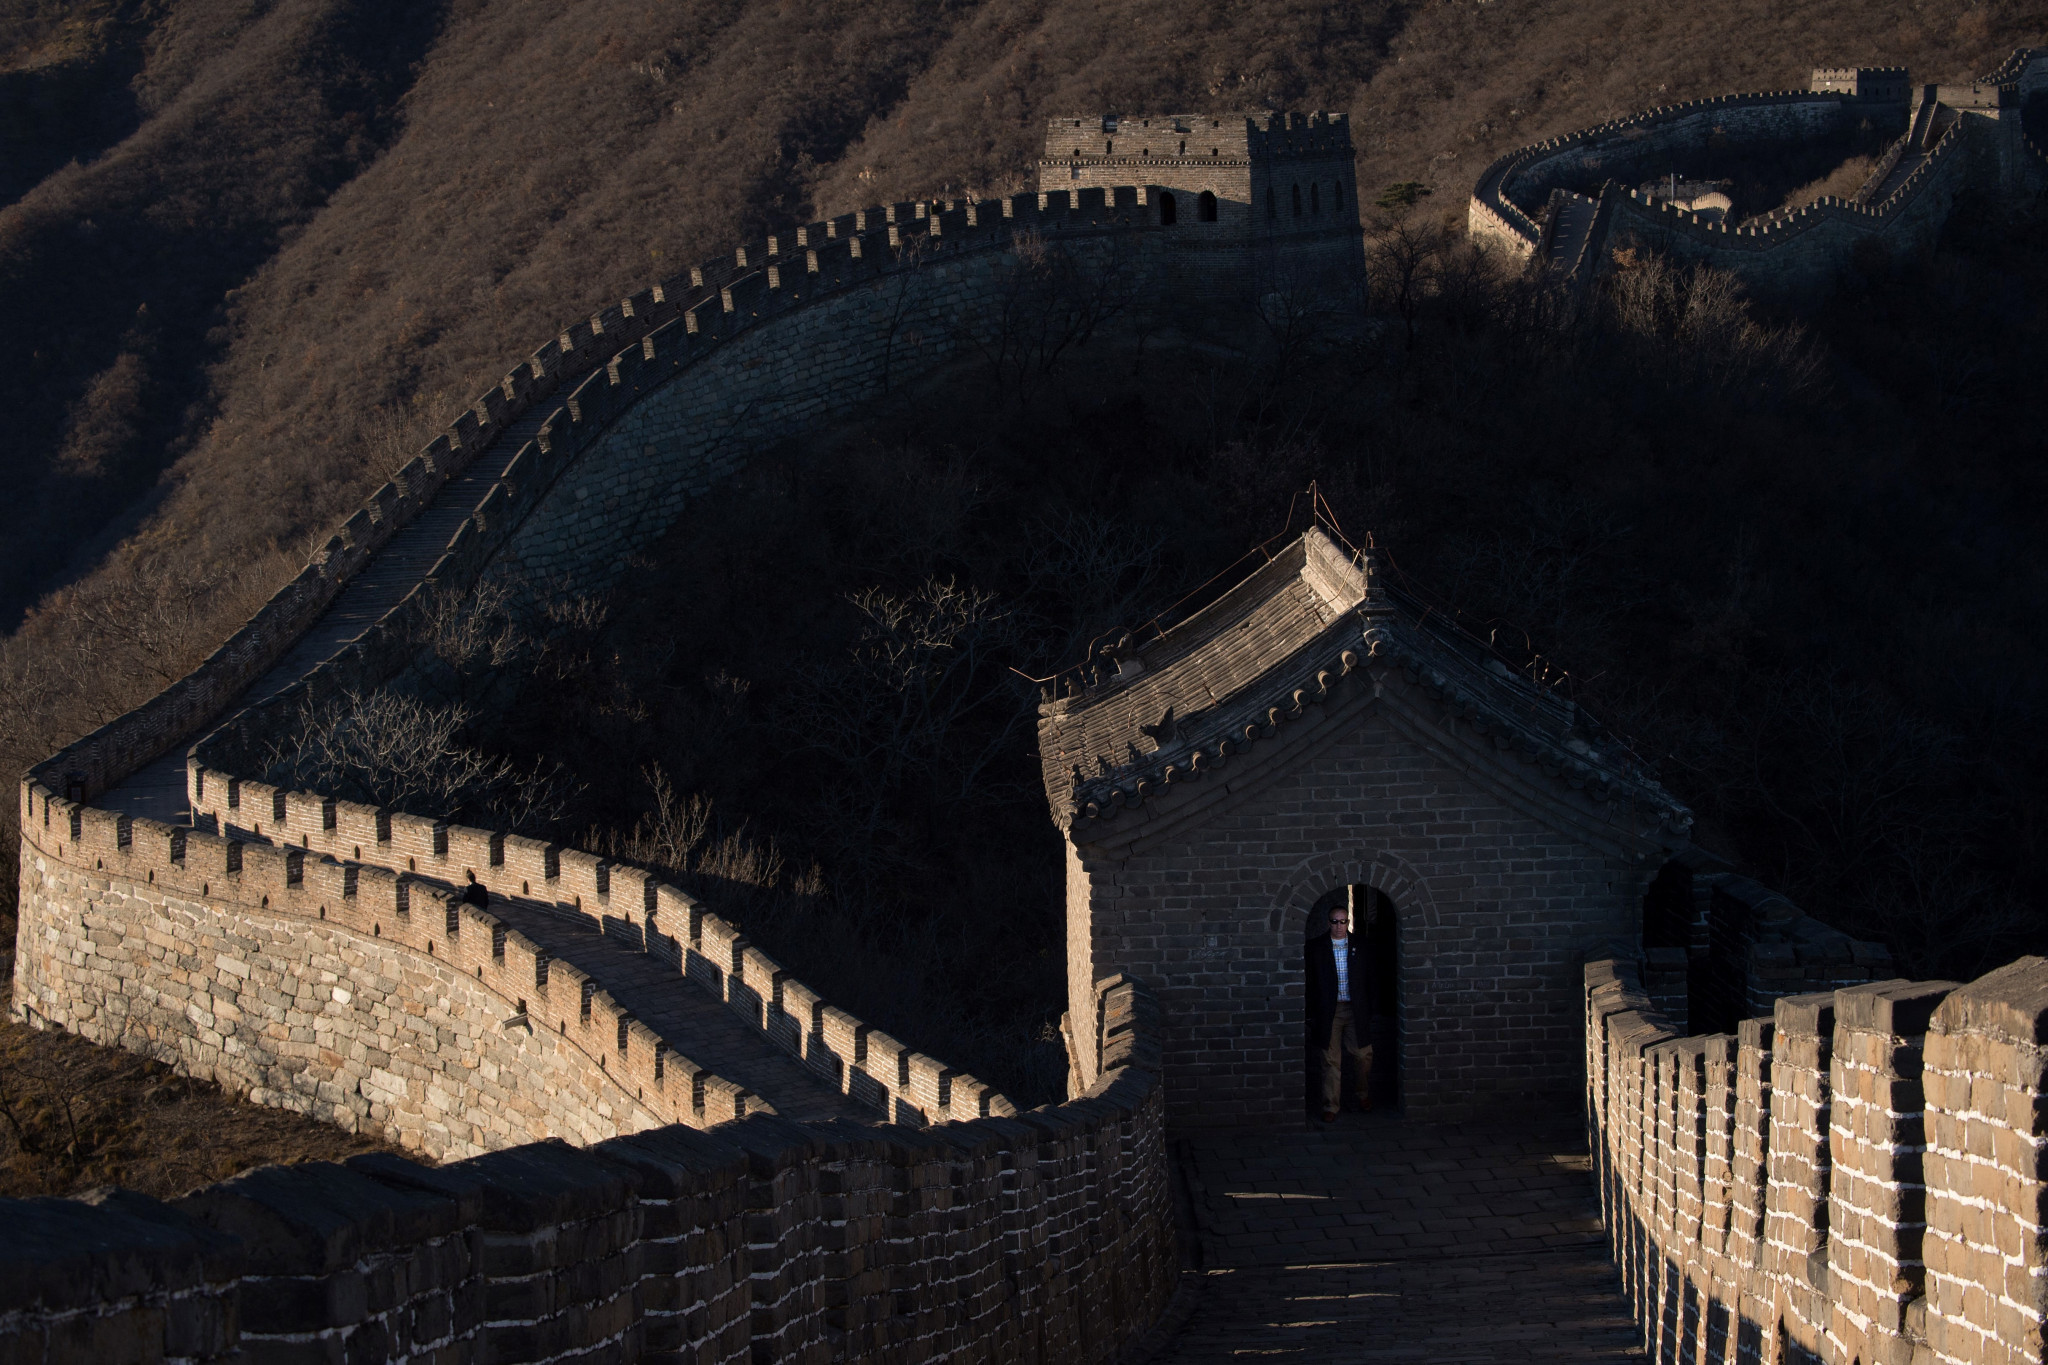 There are fears that the new line could impact the Great Wall of China ©Getty Images